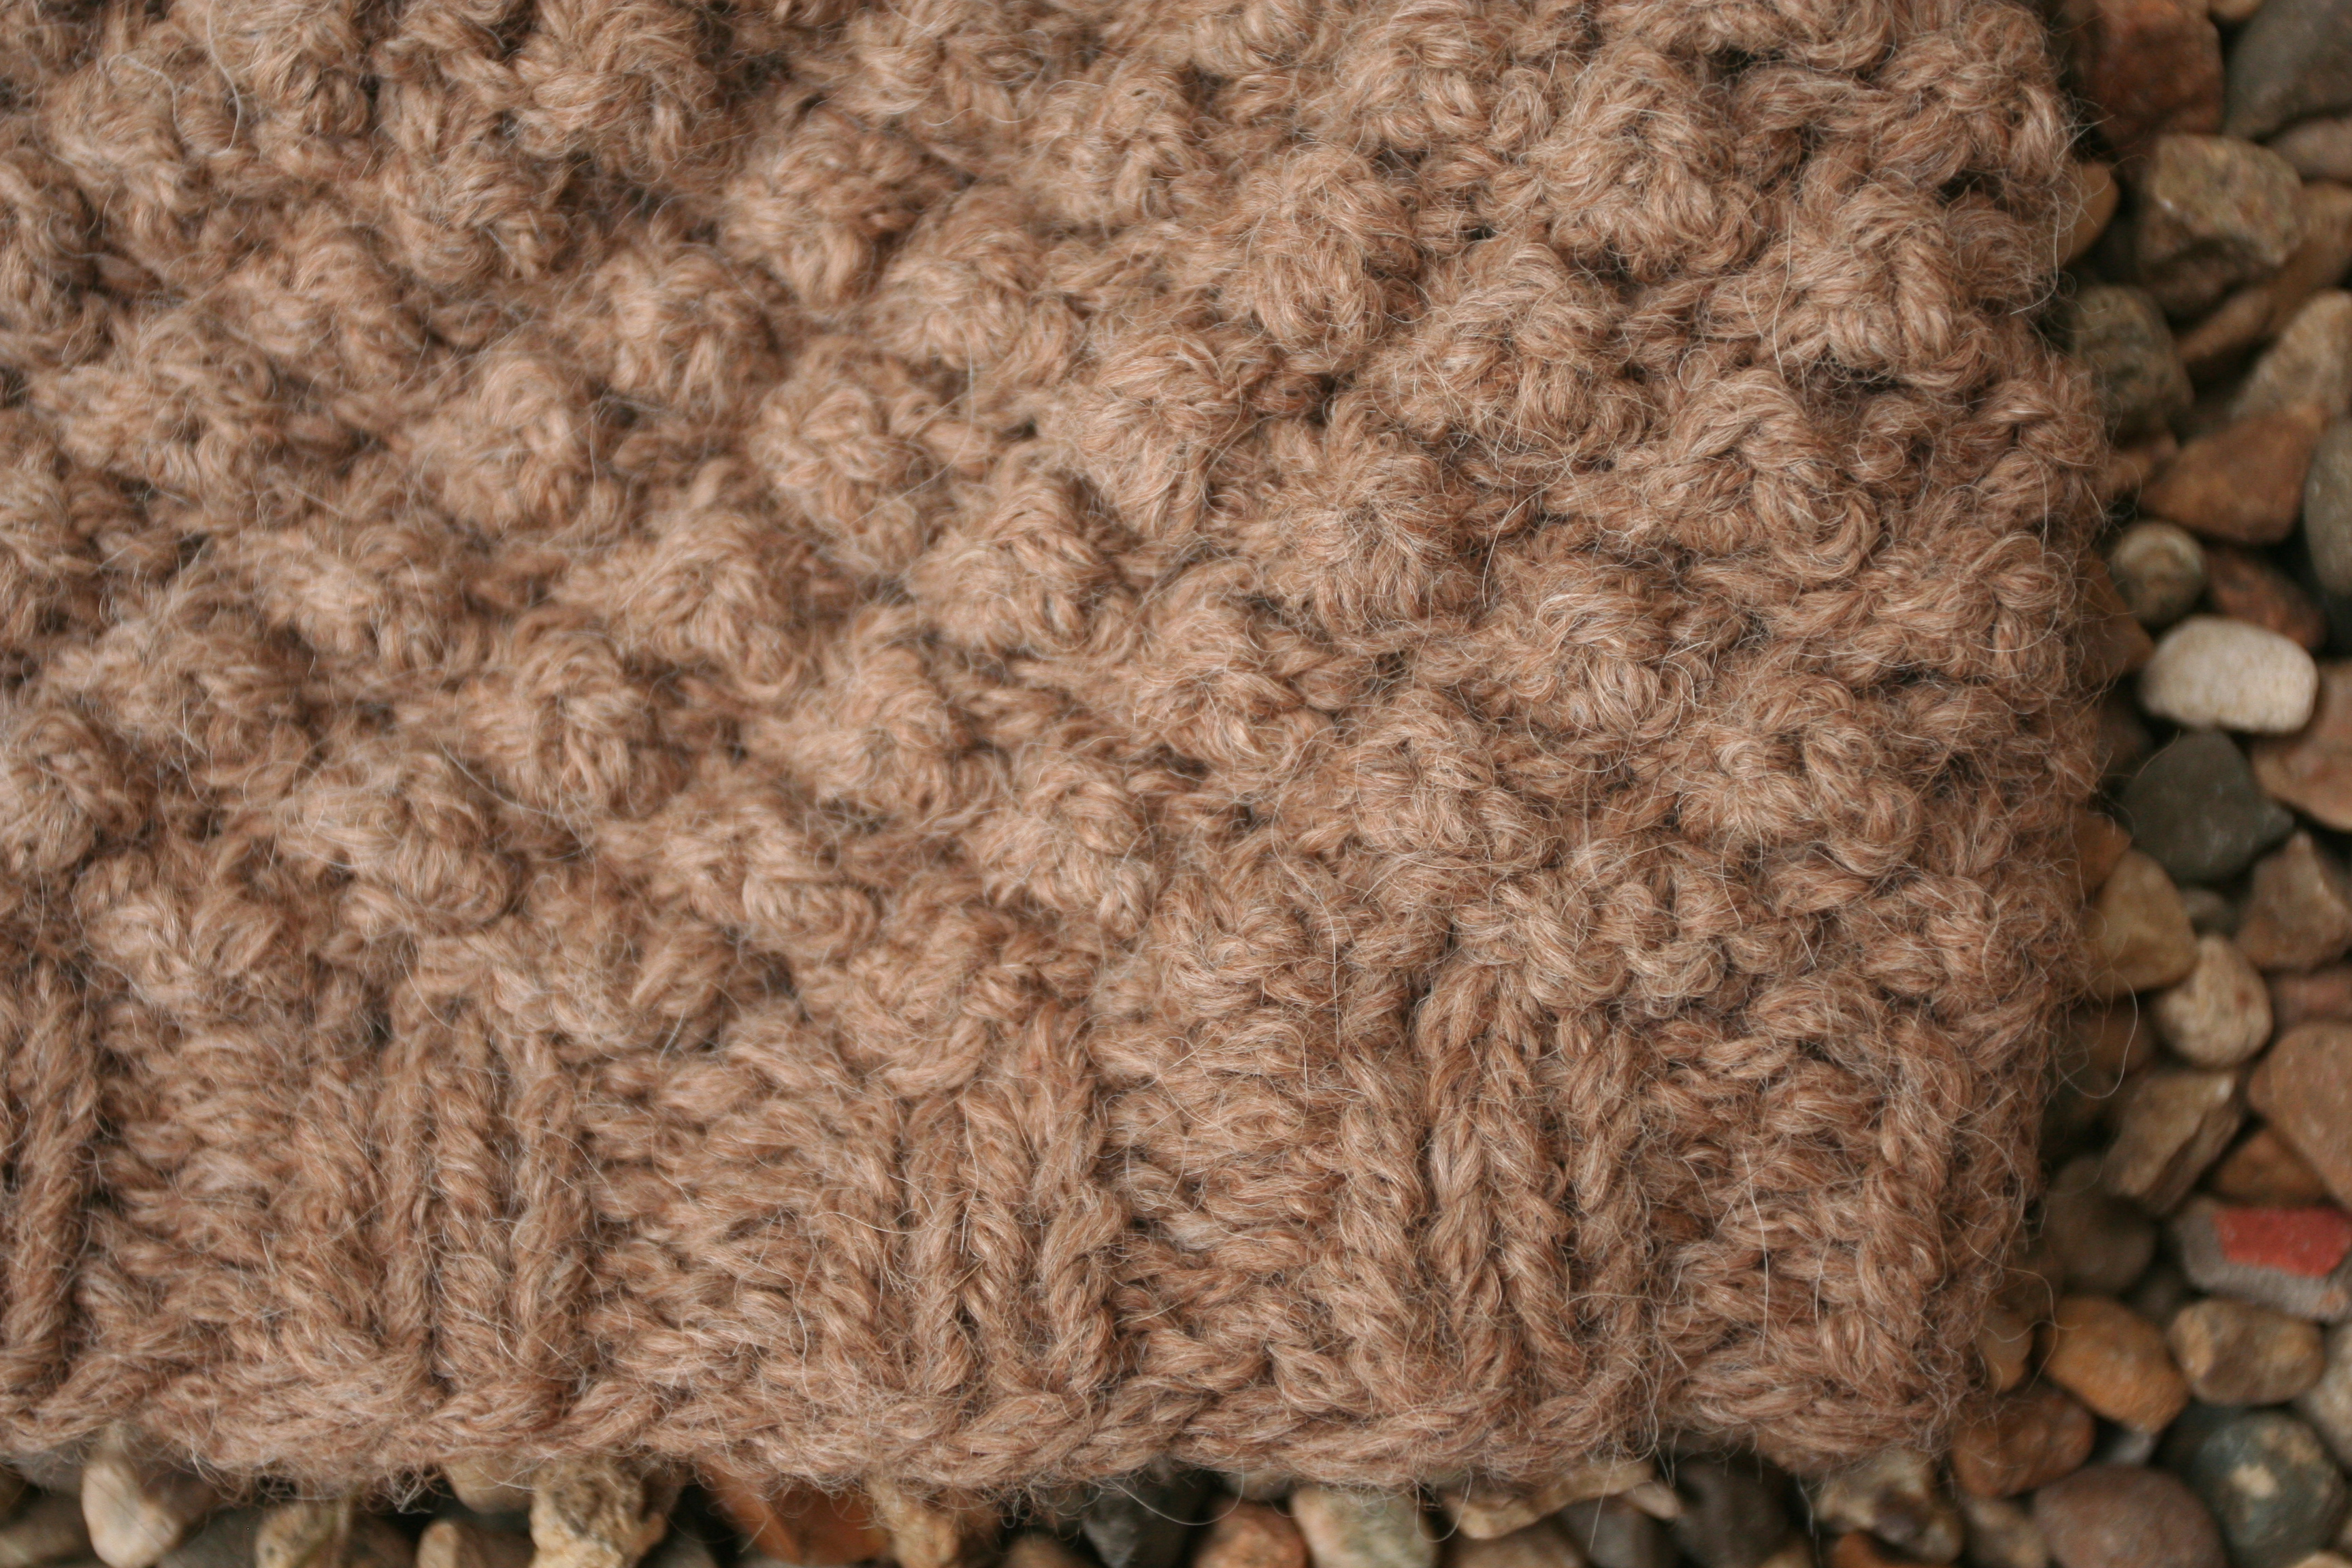 Knitting Stitches For Thick Yarn : super bulky yarn living in the woods and making stuff